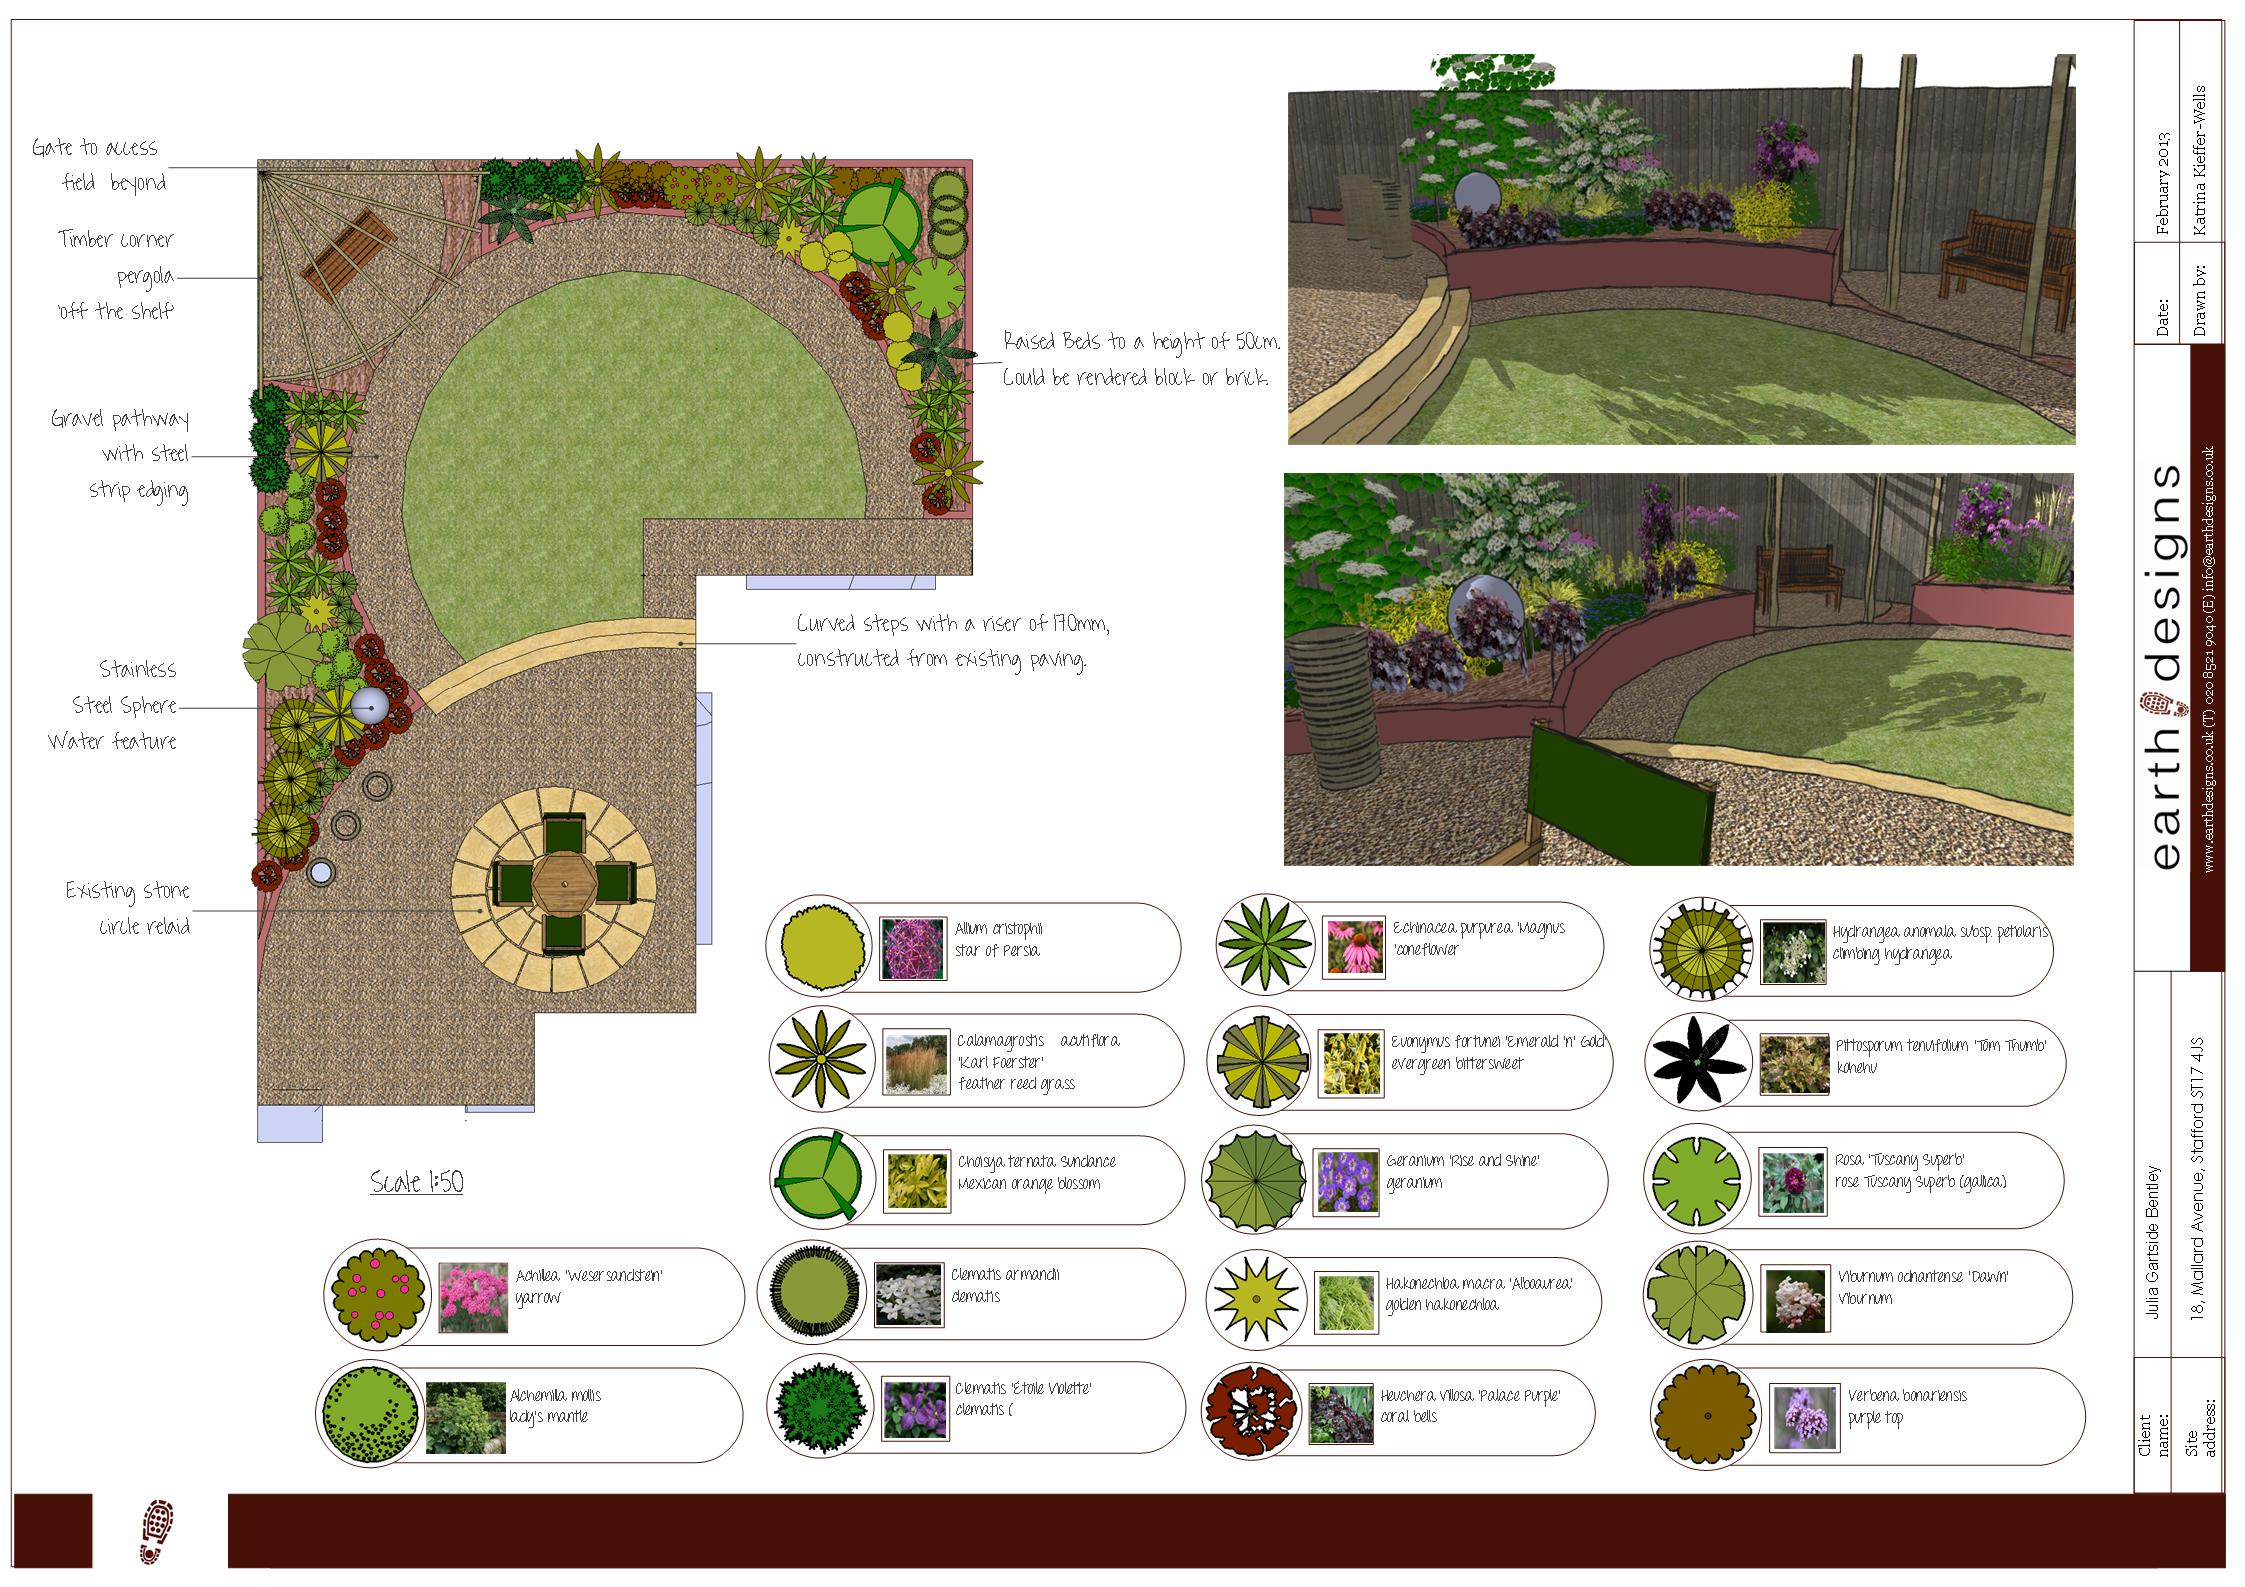 Garden Design Questionnaires For Clients design questionnaires for clientspost postal in ideas